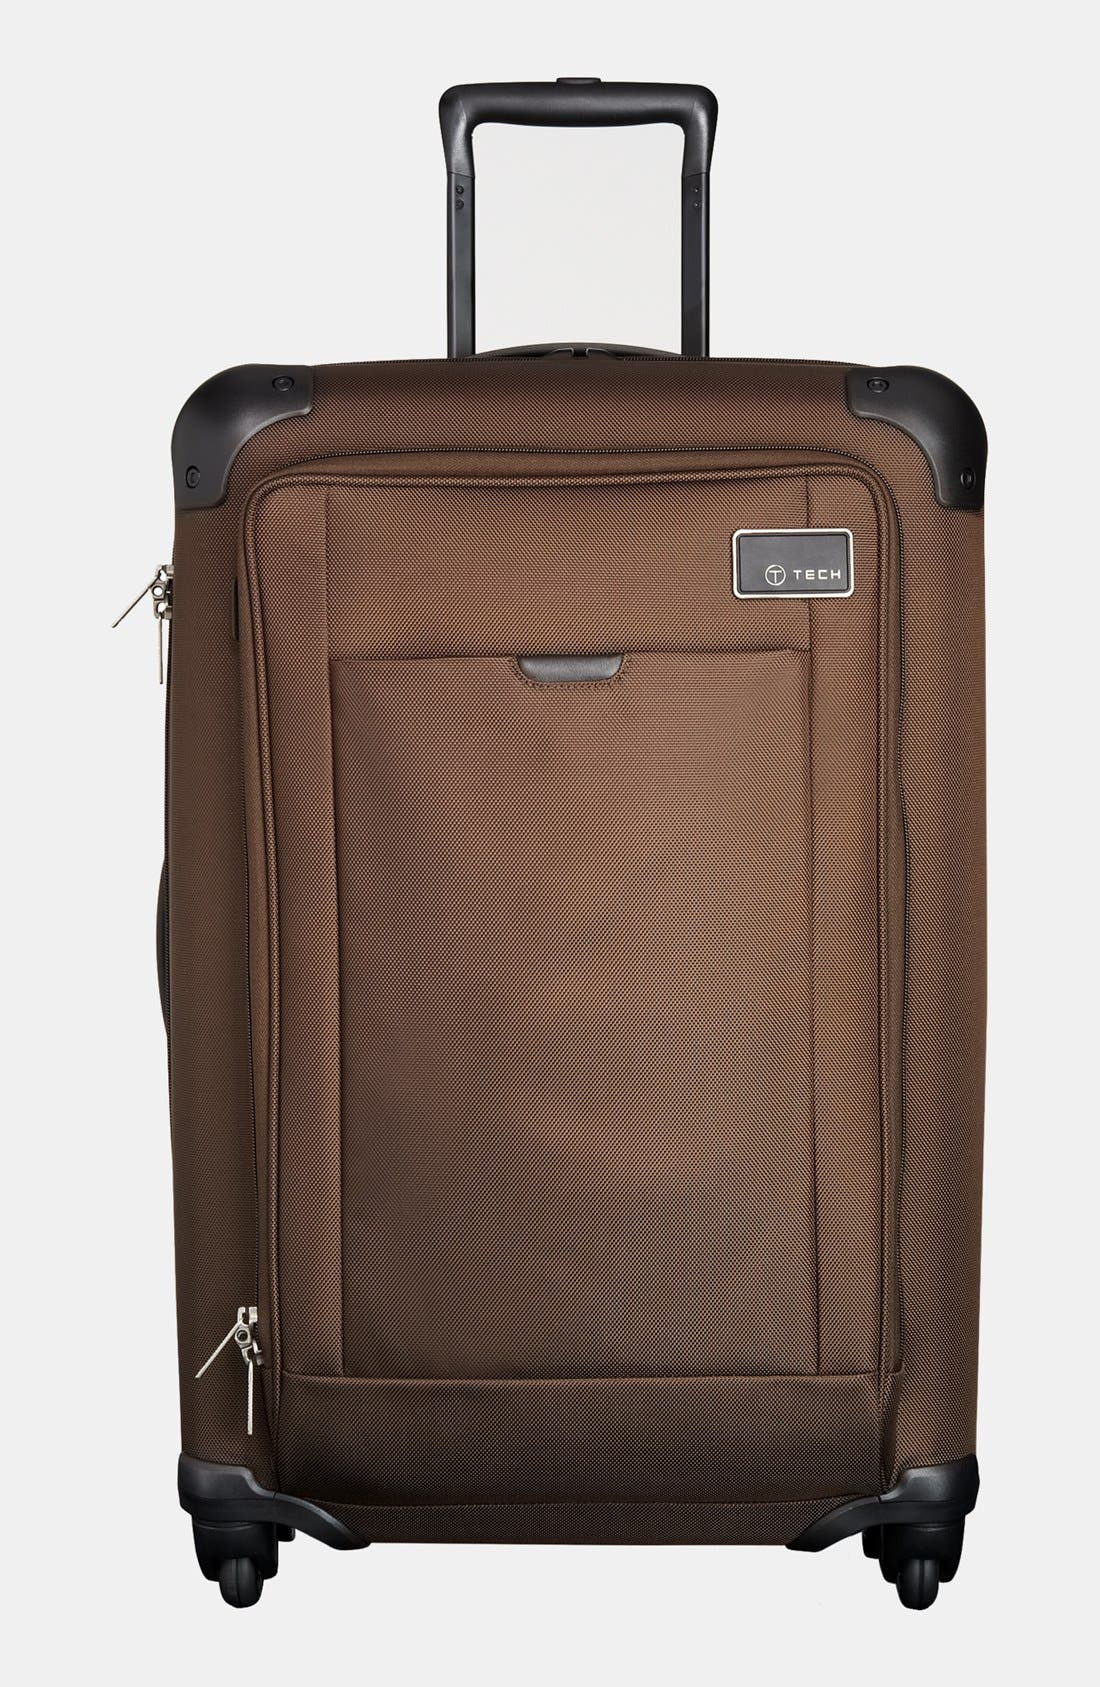 Main Image - Tumi 'T-Tech Network' Lightweight 4-Wheeled Medium Trip Packing Case